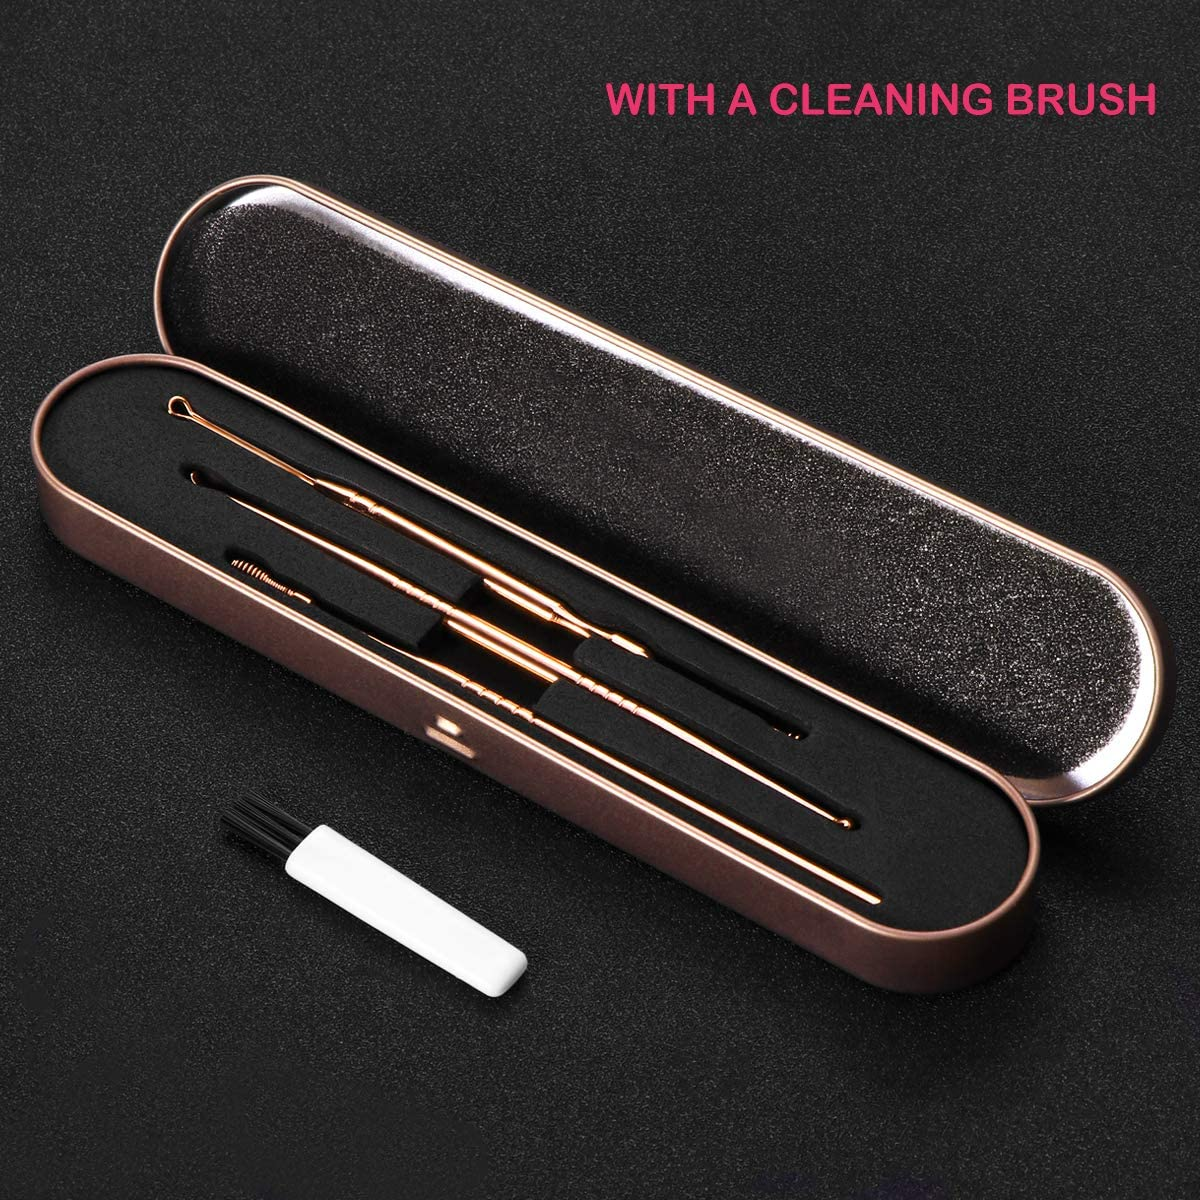 Ear Wax Removal Kit 3PCS Ear Curette with 1PC Cleaning Brush Earwax Removal Ear Pick Stainless Steel with Storage Box (Rose Gold)